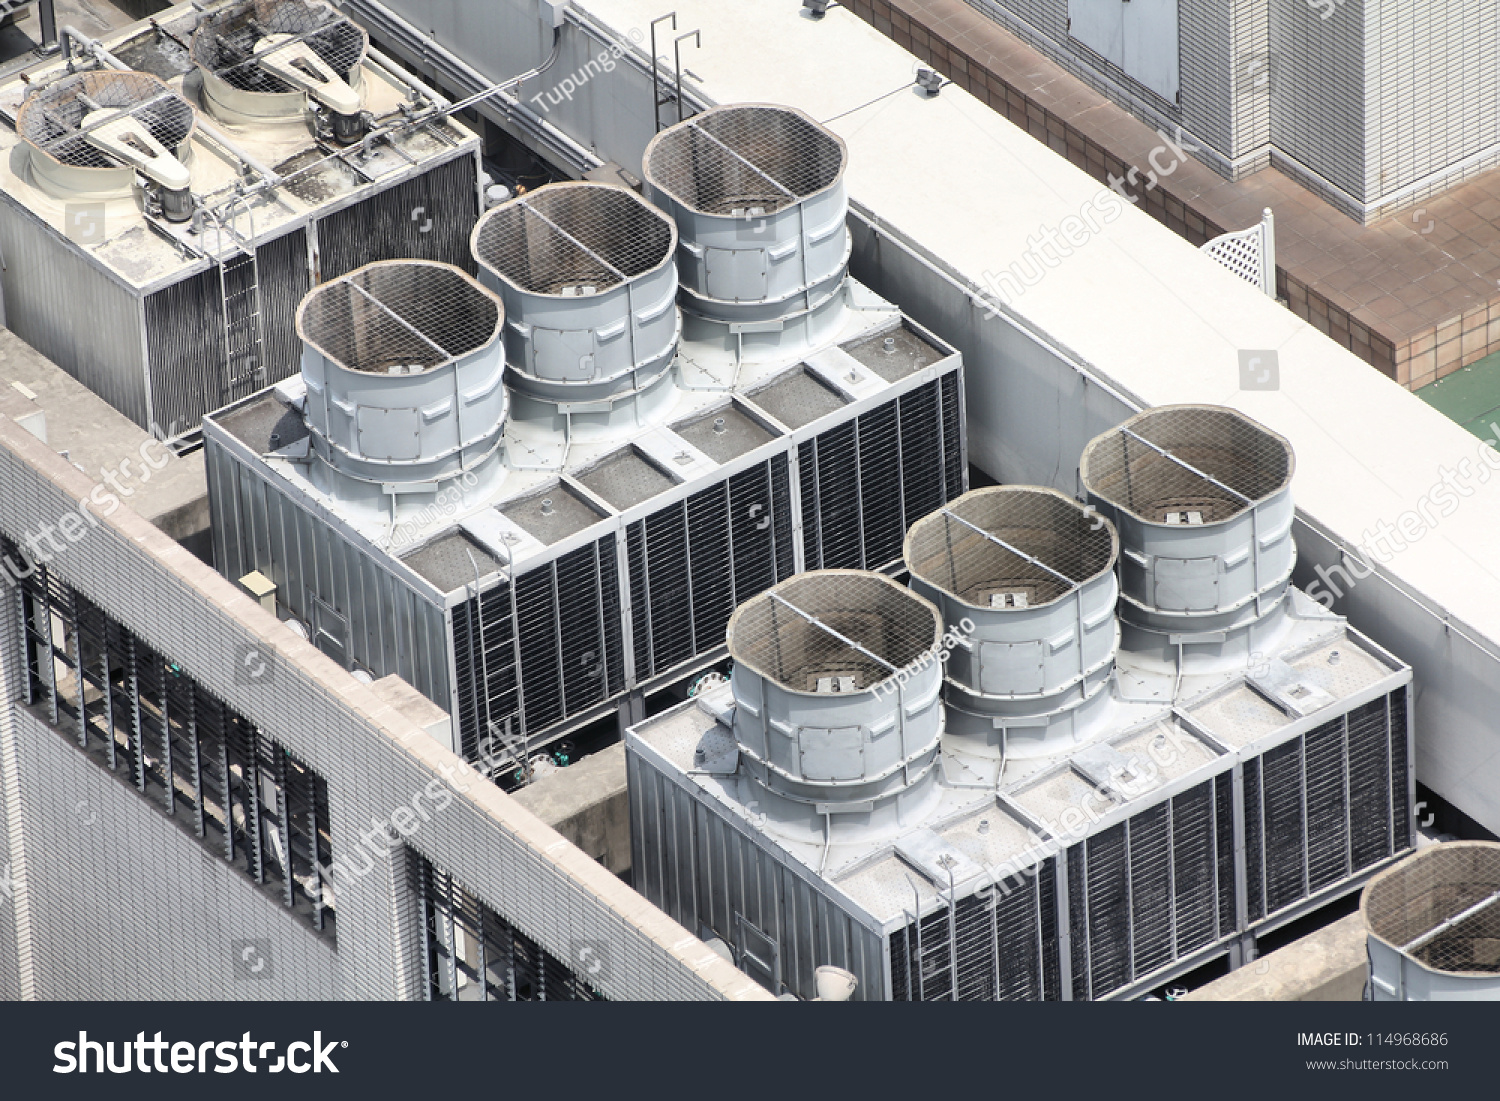 Exhaust vents of industrial air conditioning and ventilation units  #756356